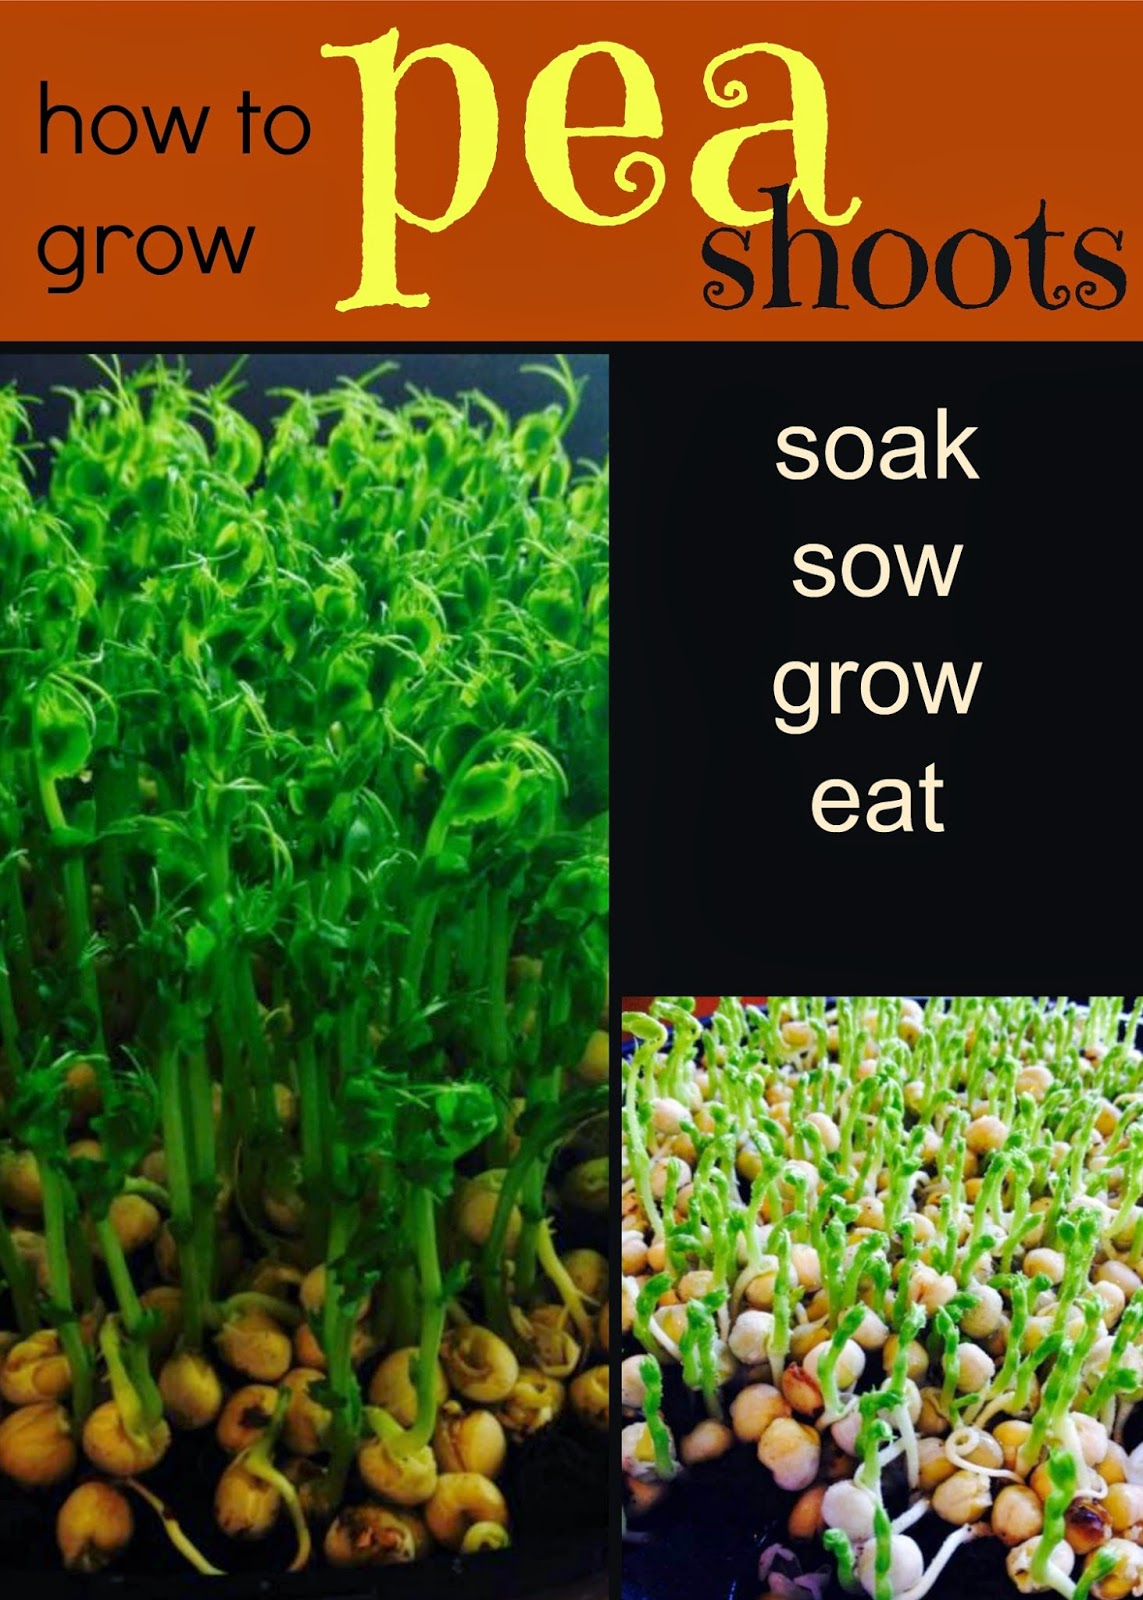 How to grow pea shoots indoors.